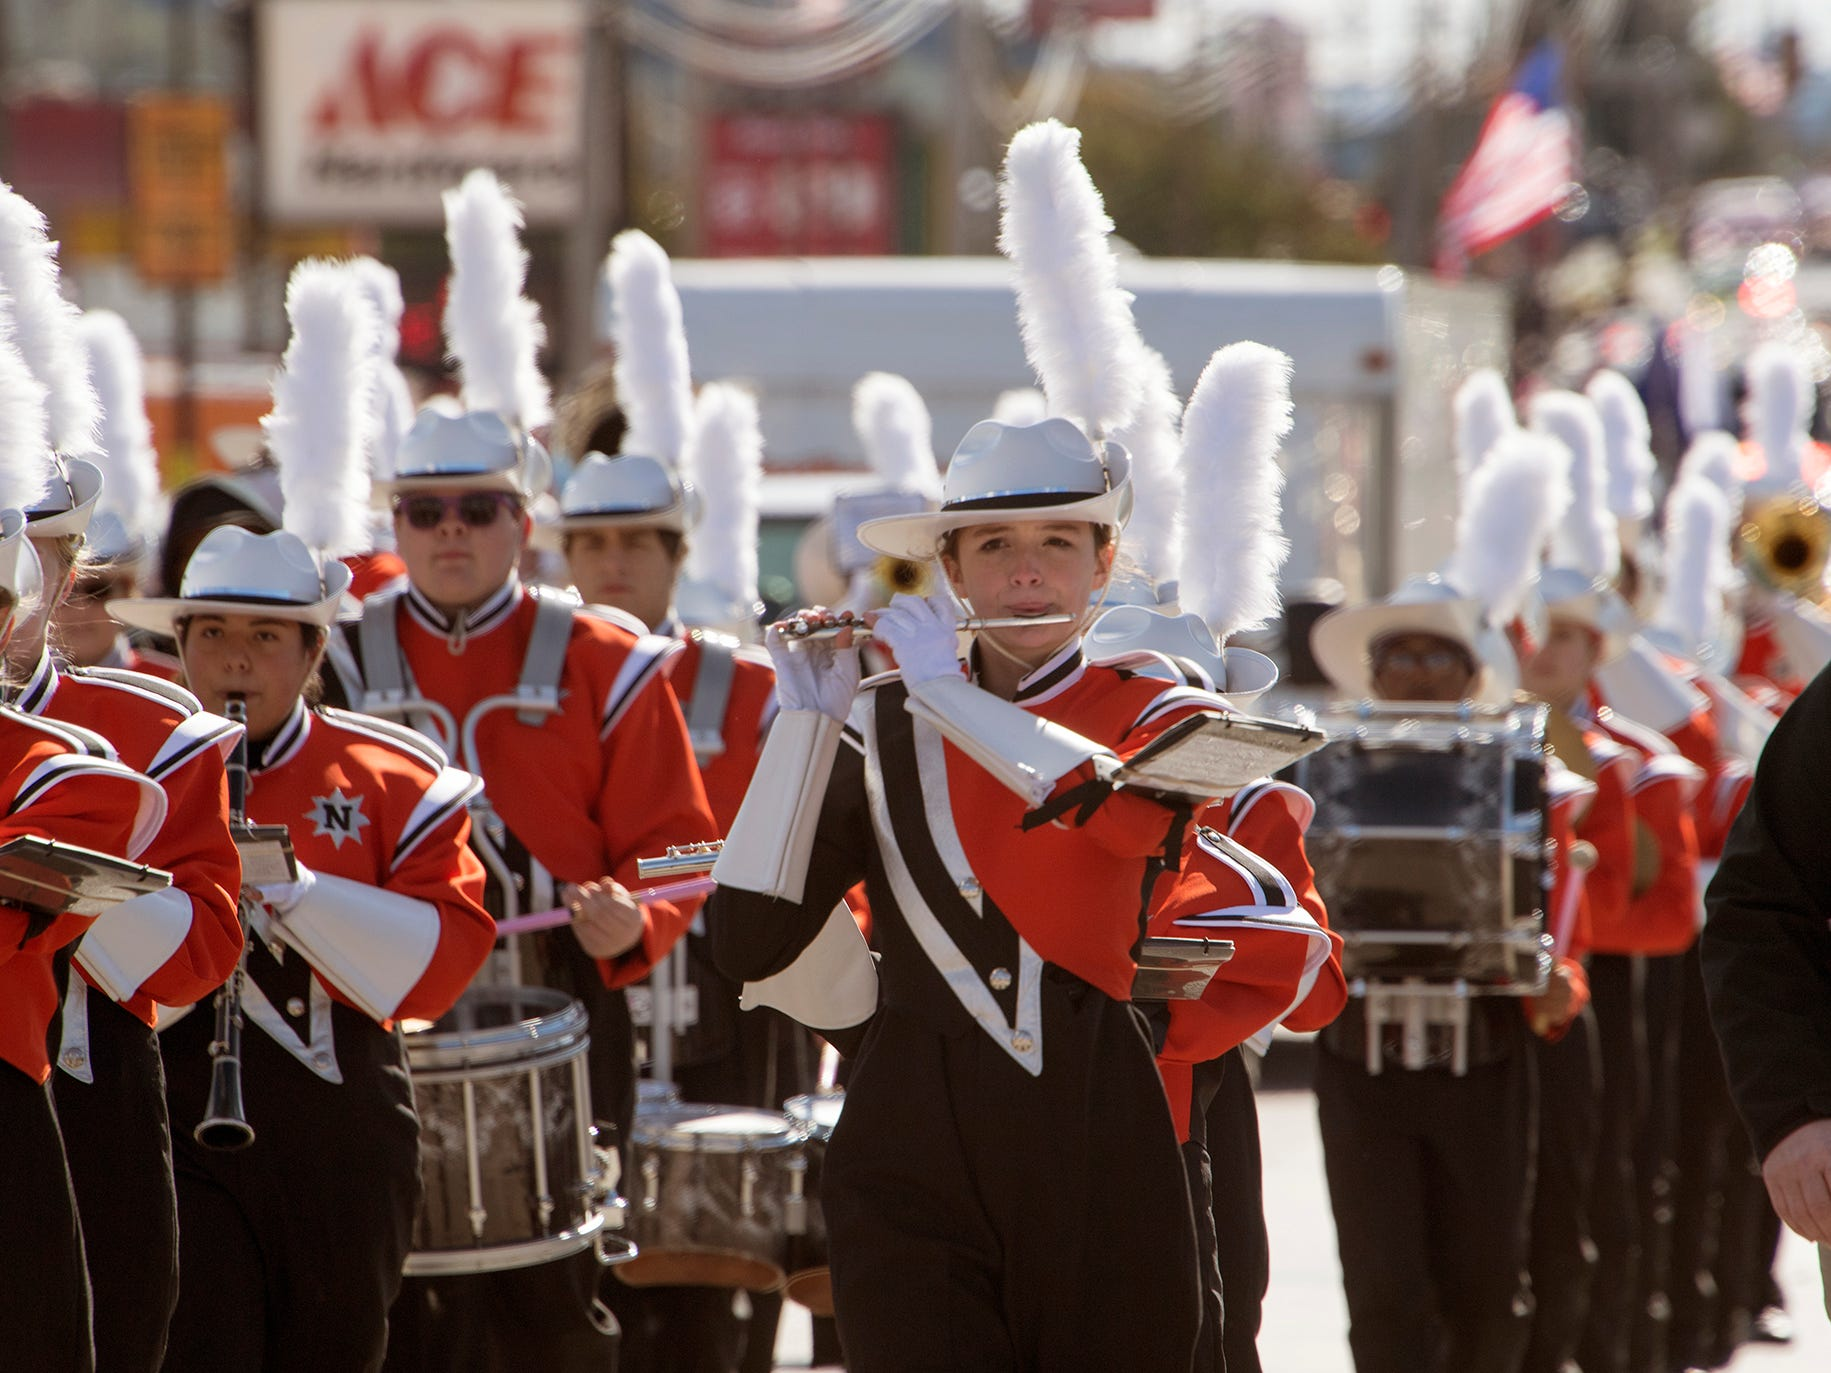 The Northeastern High School Marching Band passes through Manchester during the 53rd Annual Manchester/Mt. Wolf Halloween Parade.